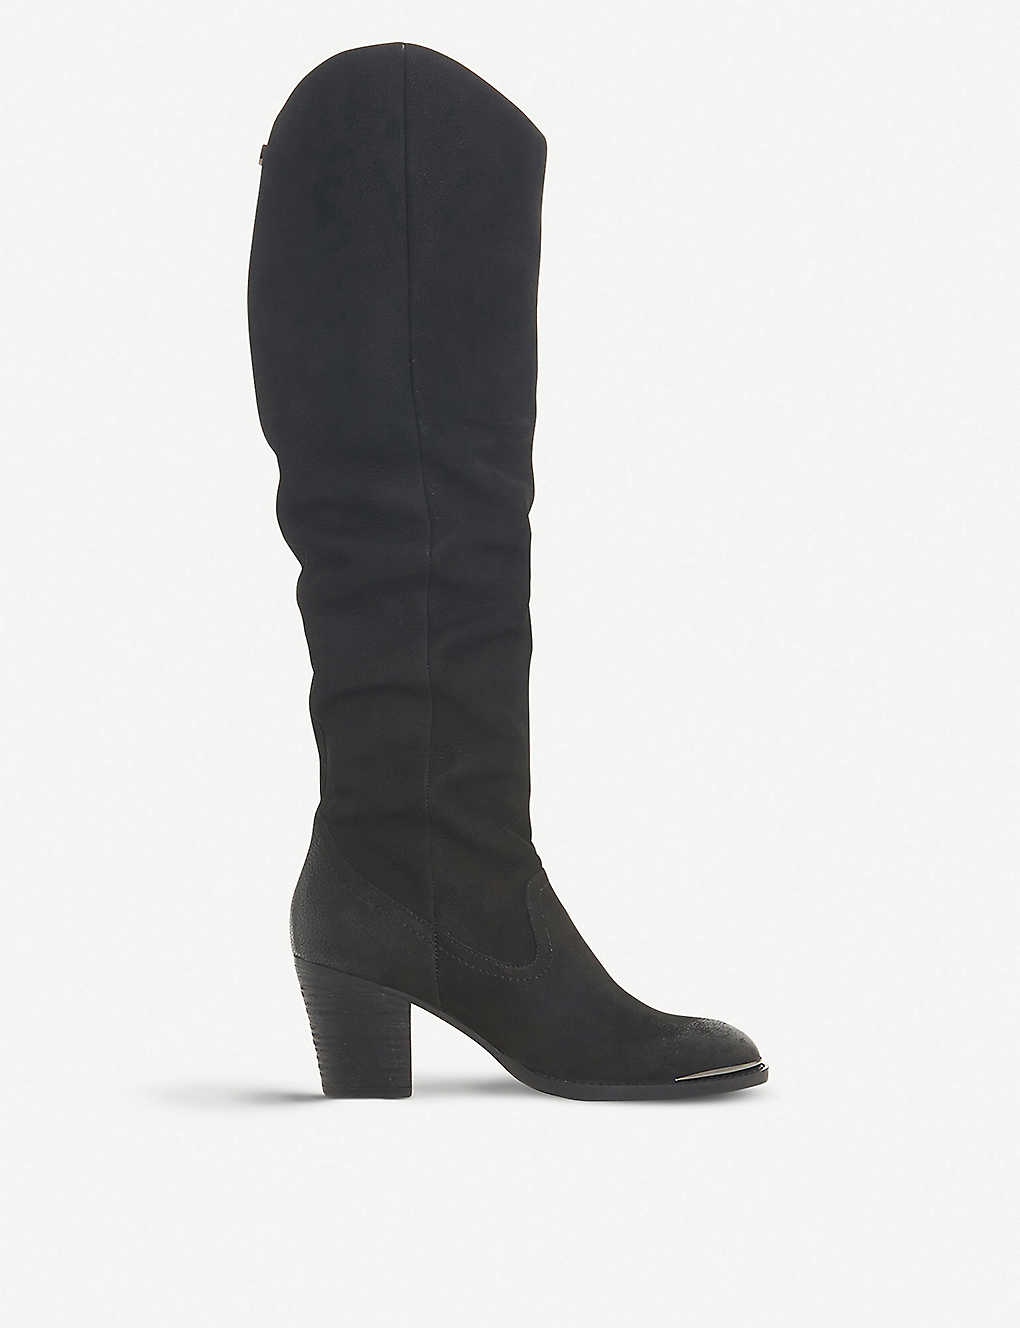 6085d29af40 Rova slouchy suede boots - Blacknubuck ...